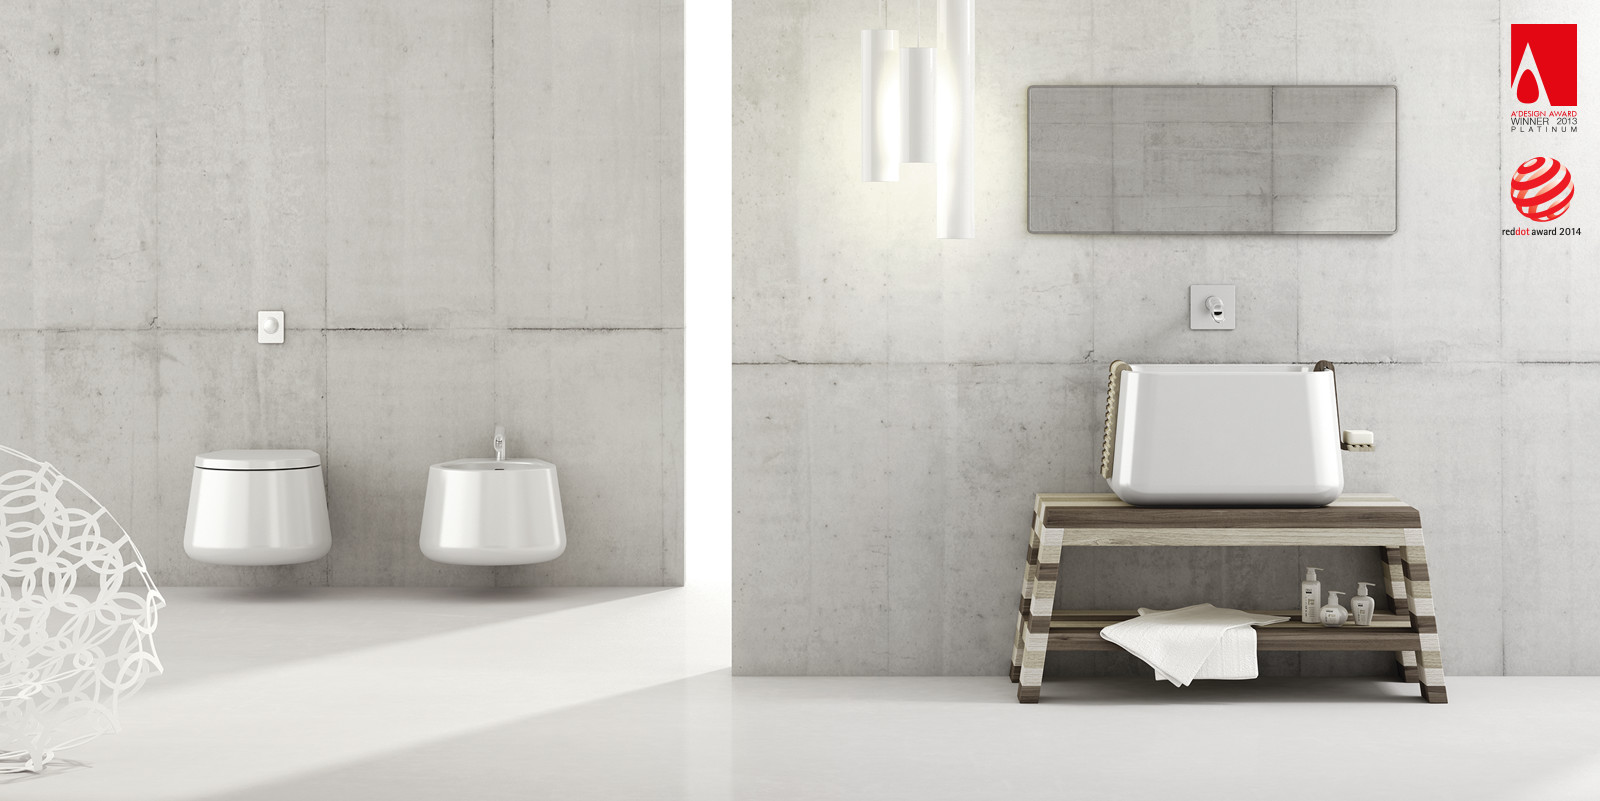 Catino bathroom collection by Emanuele Pangrazi